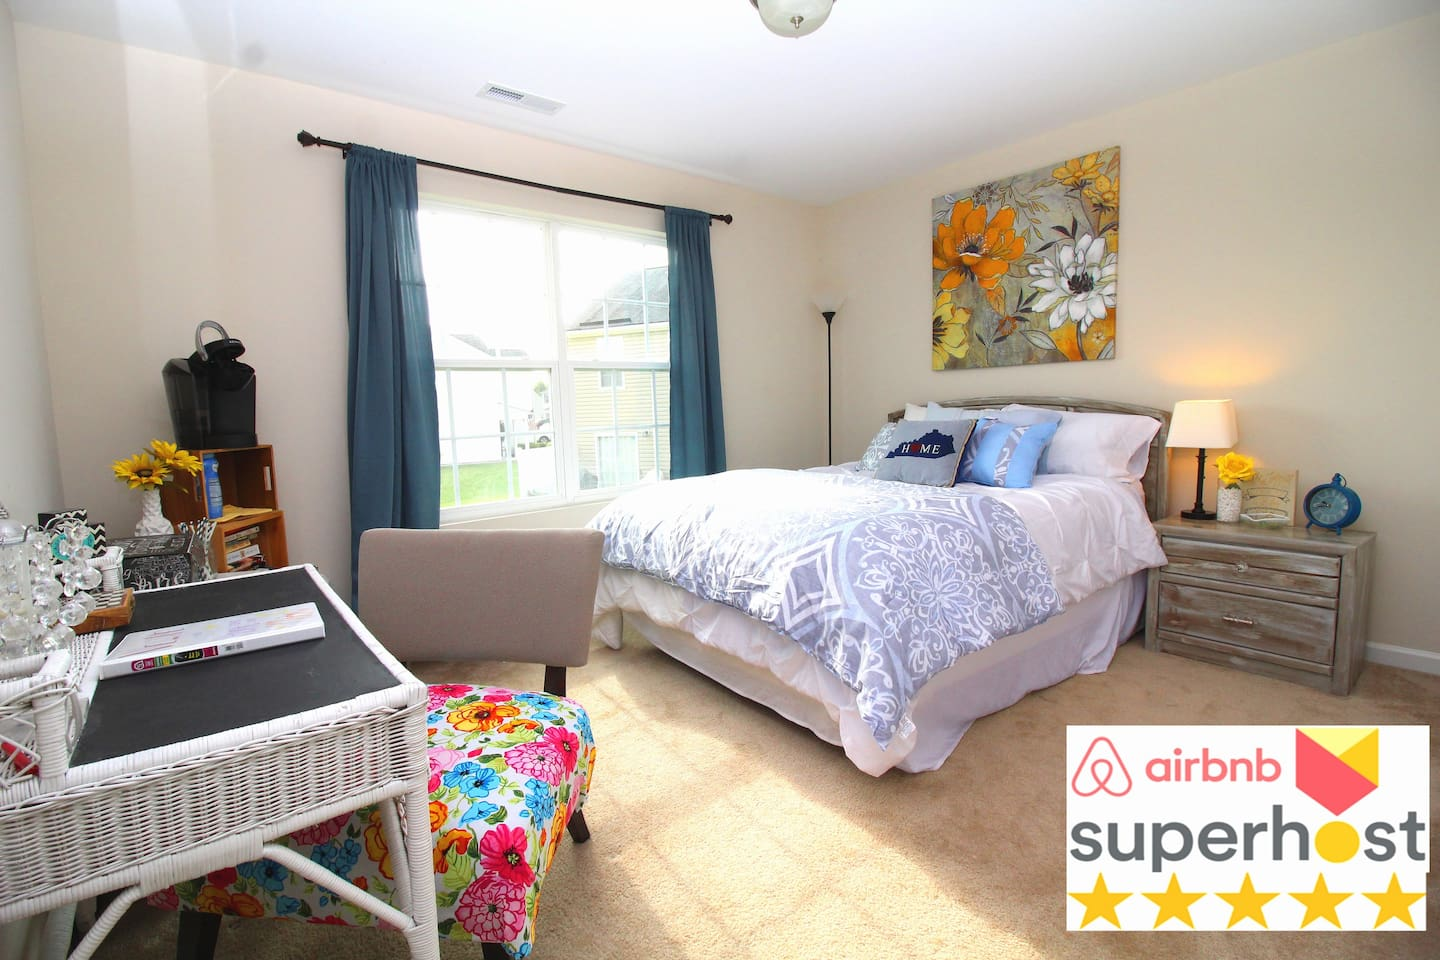 Private upstairs room overlooking neighborhood with Queen Bed. Affordable 5 ★ comforts and sparkly clean! Located next to Elon University and central location in Burlington and the town of Elon.